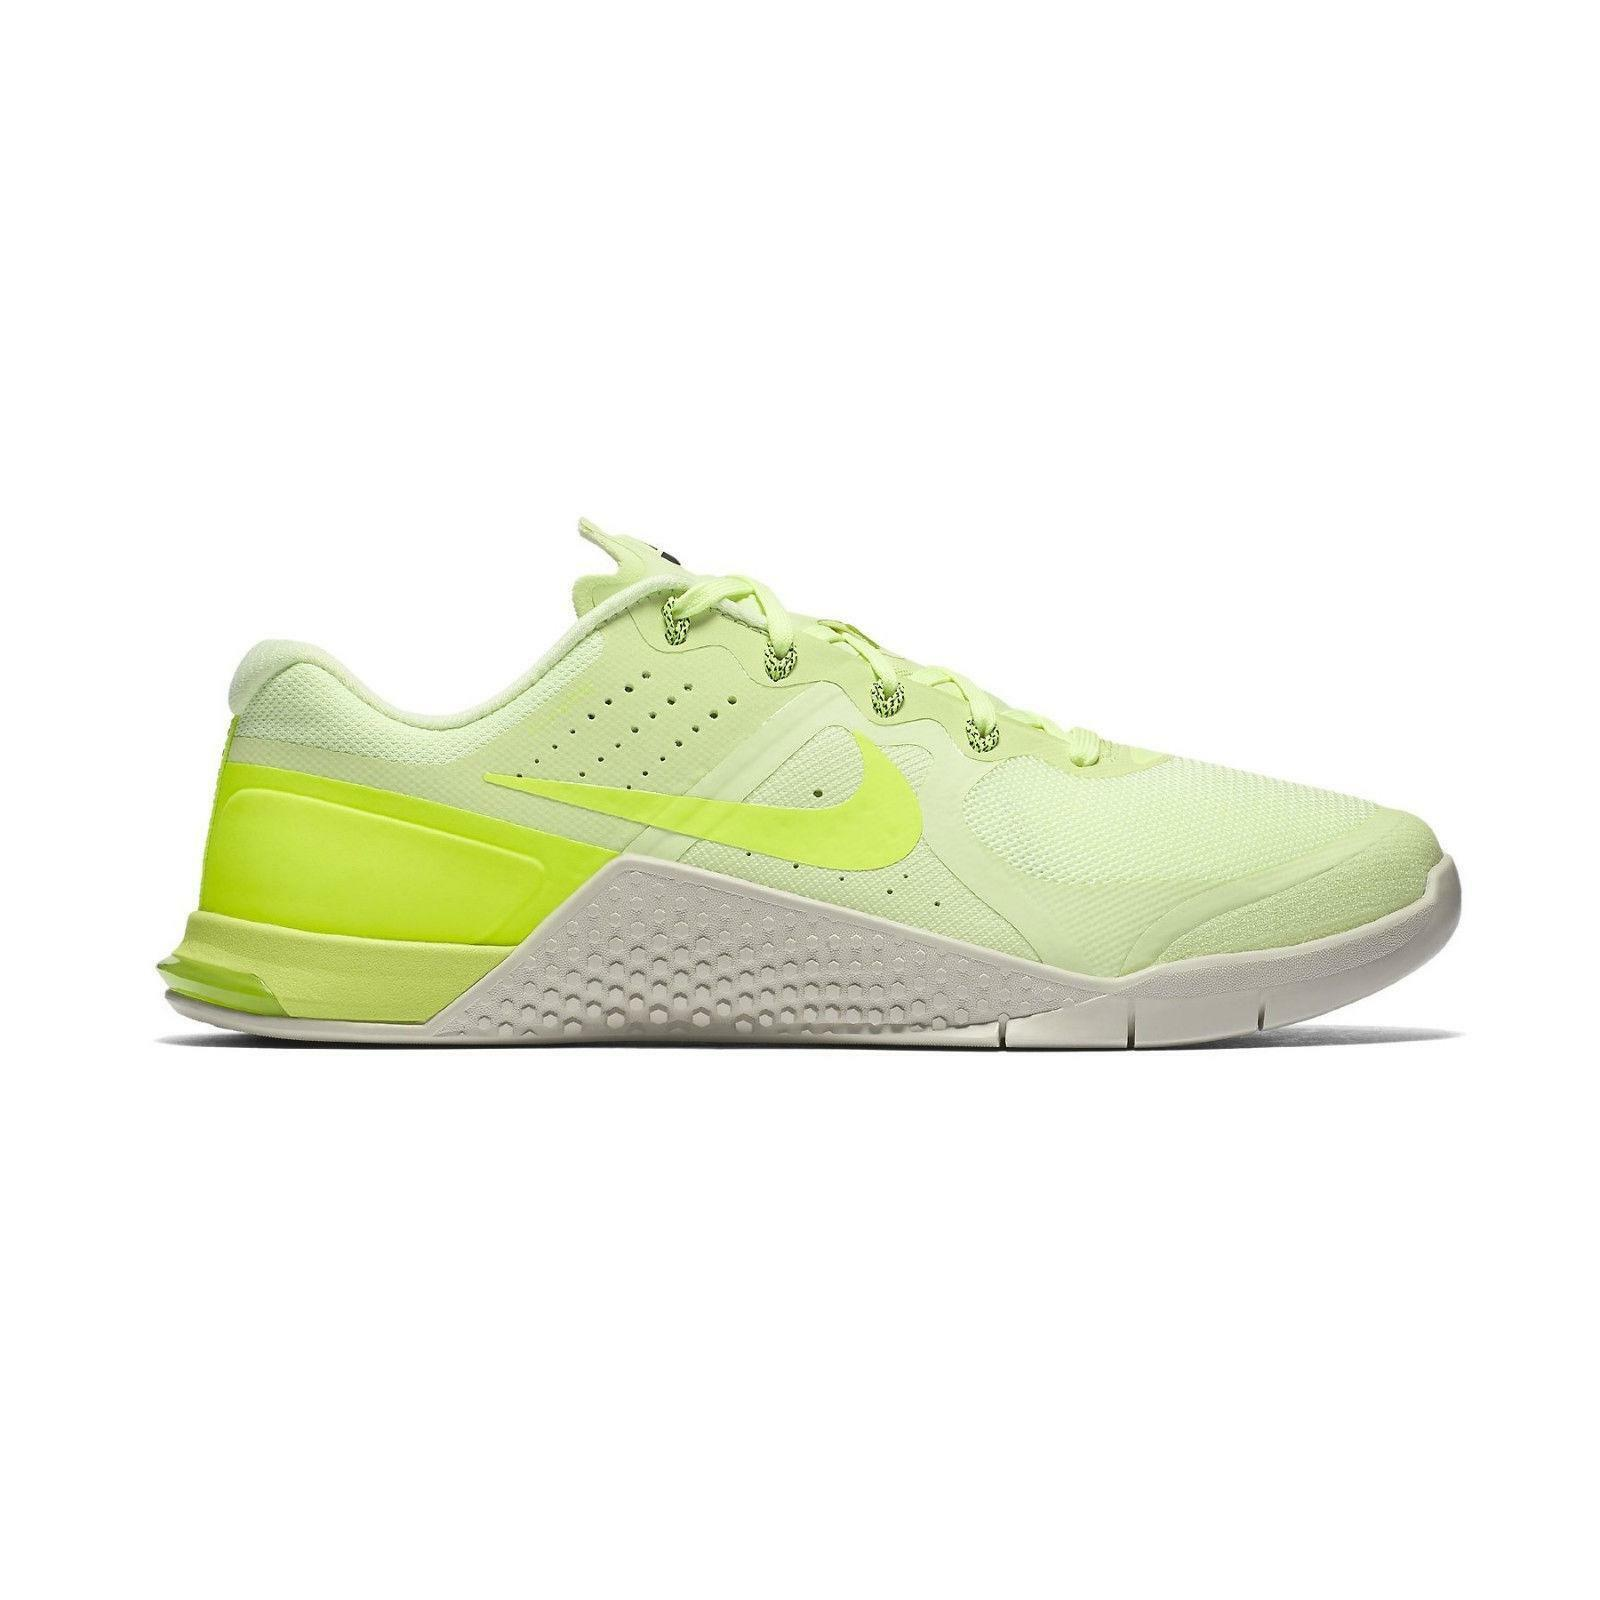 Mens NIKE METCON 2 Volt Light Textile Synthetic Trainers 819899 700